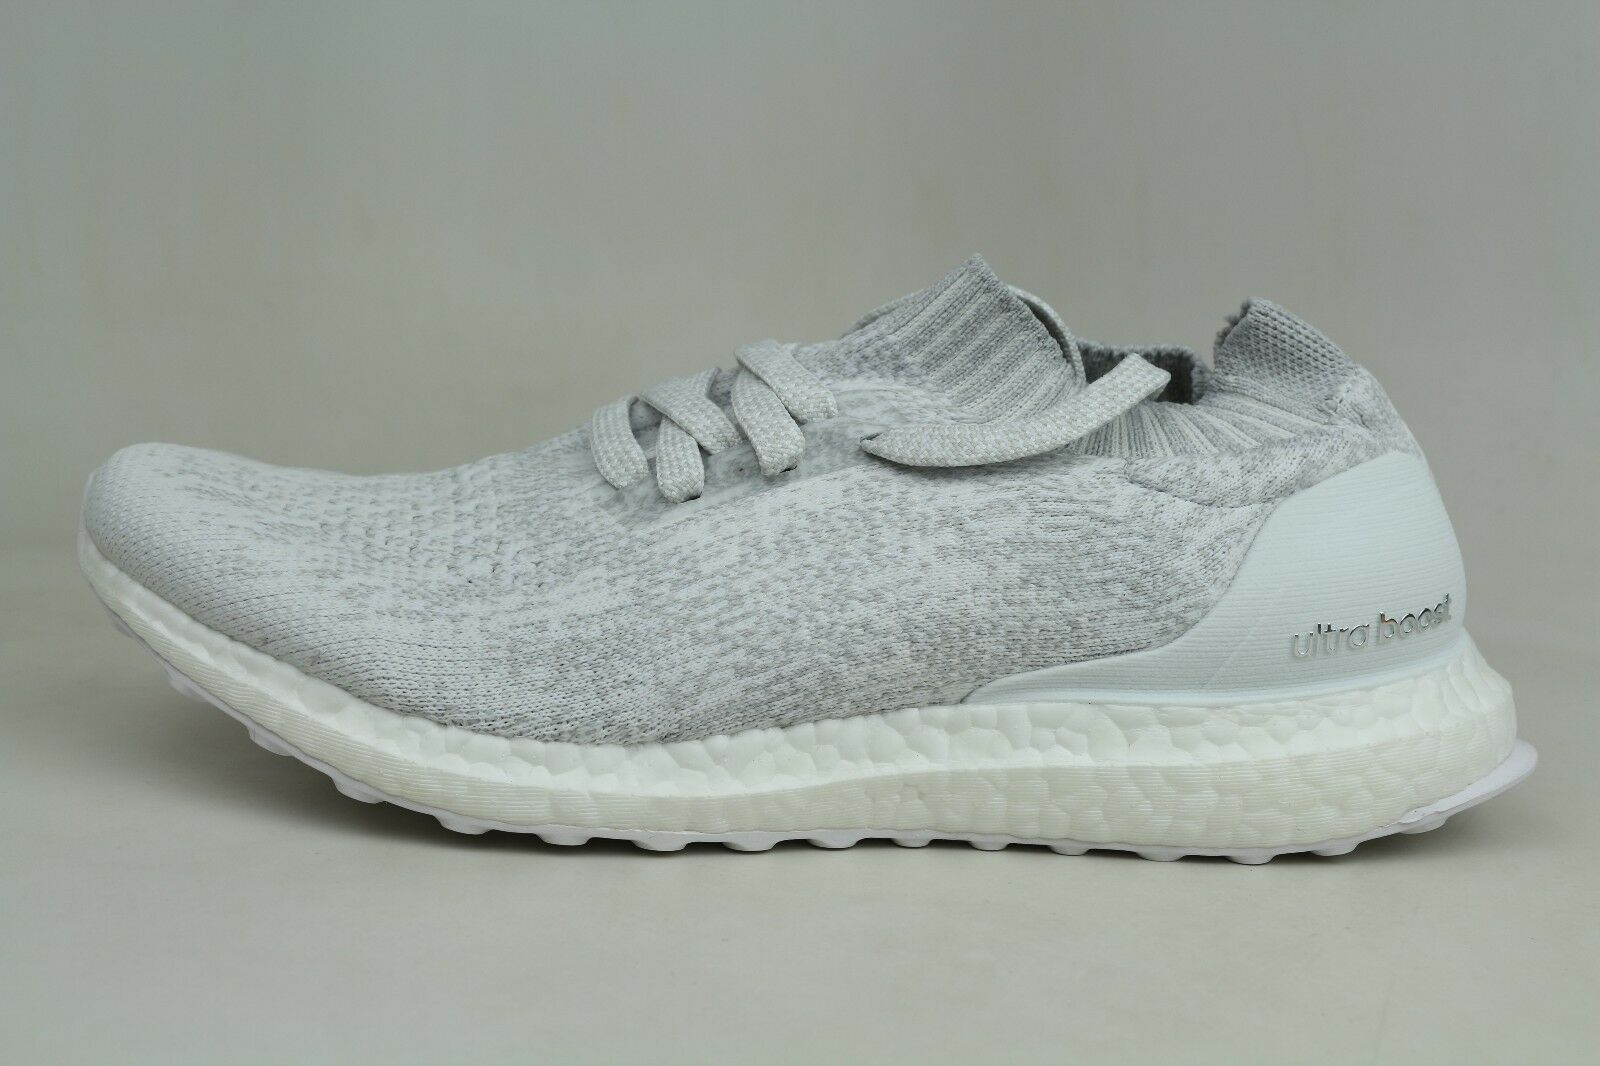 Adidas UltraBoost Uncaged Triple Running White Mens Size Sneakers BY2549 1801-45